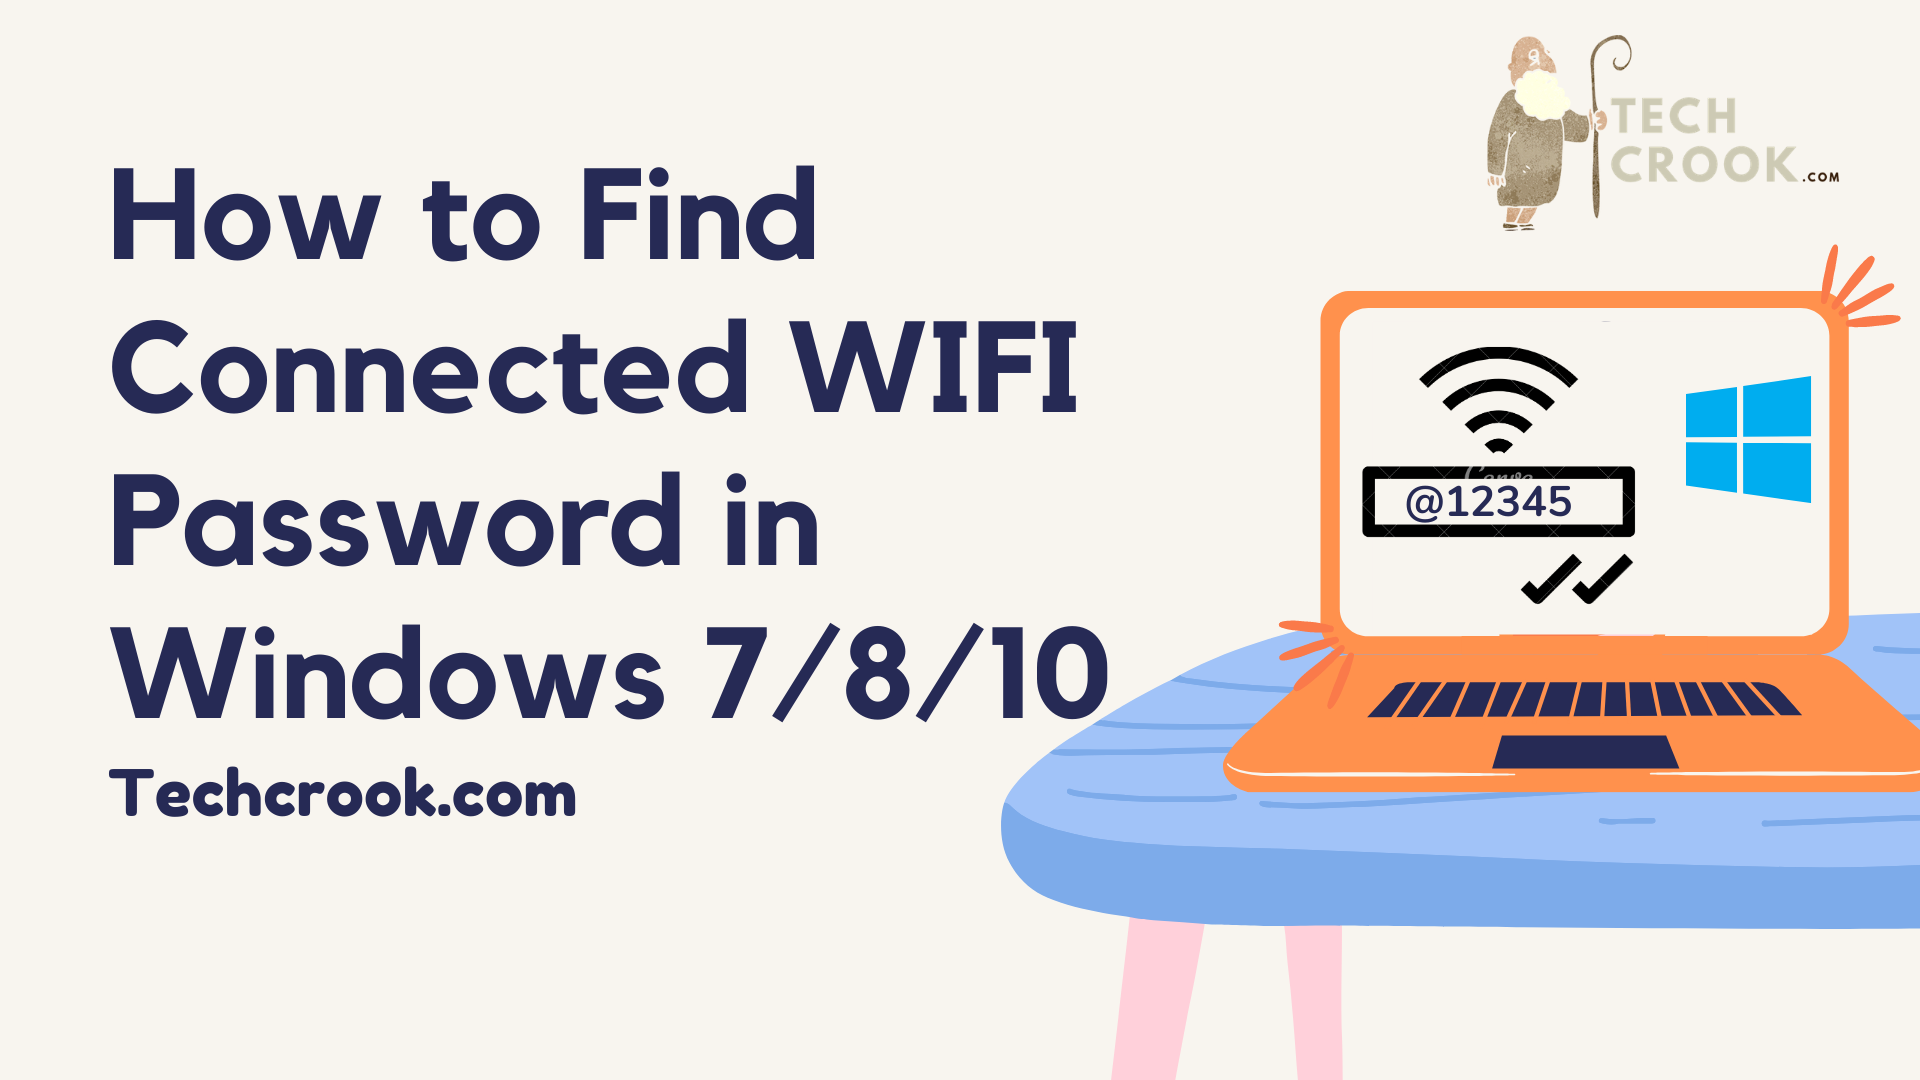 How to find the password for current connected WIFI network in Windows 7/8/10